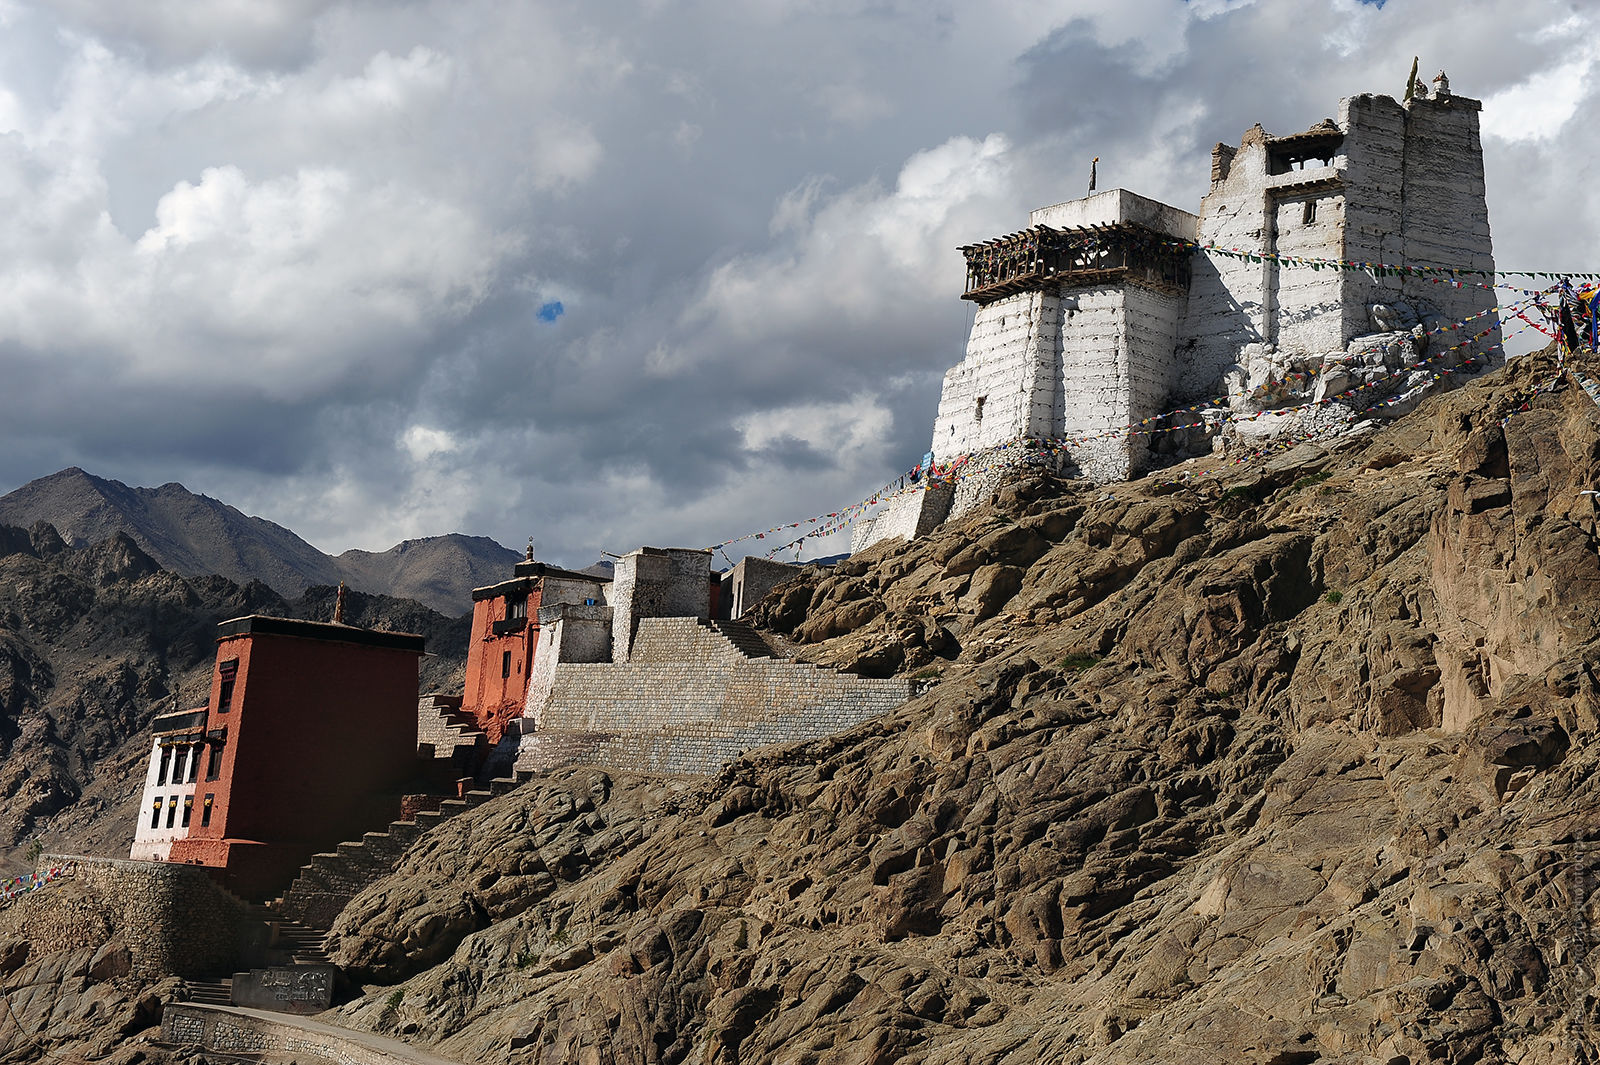 Buddhist monastery and a fortress Namngyal Tskmo, Lech. Tour of Ladakh, Himalayas, 2017.